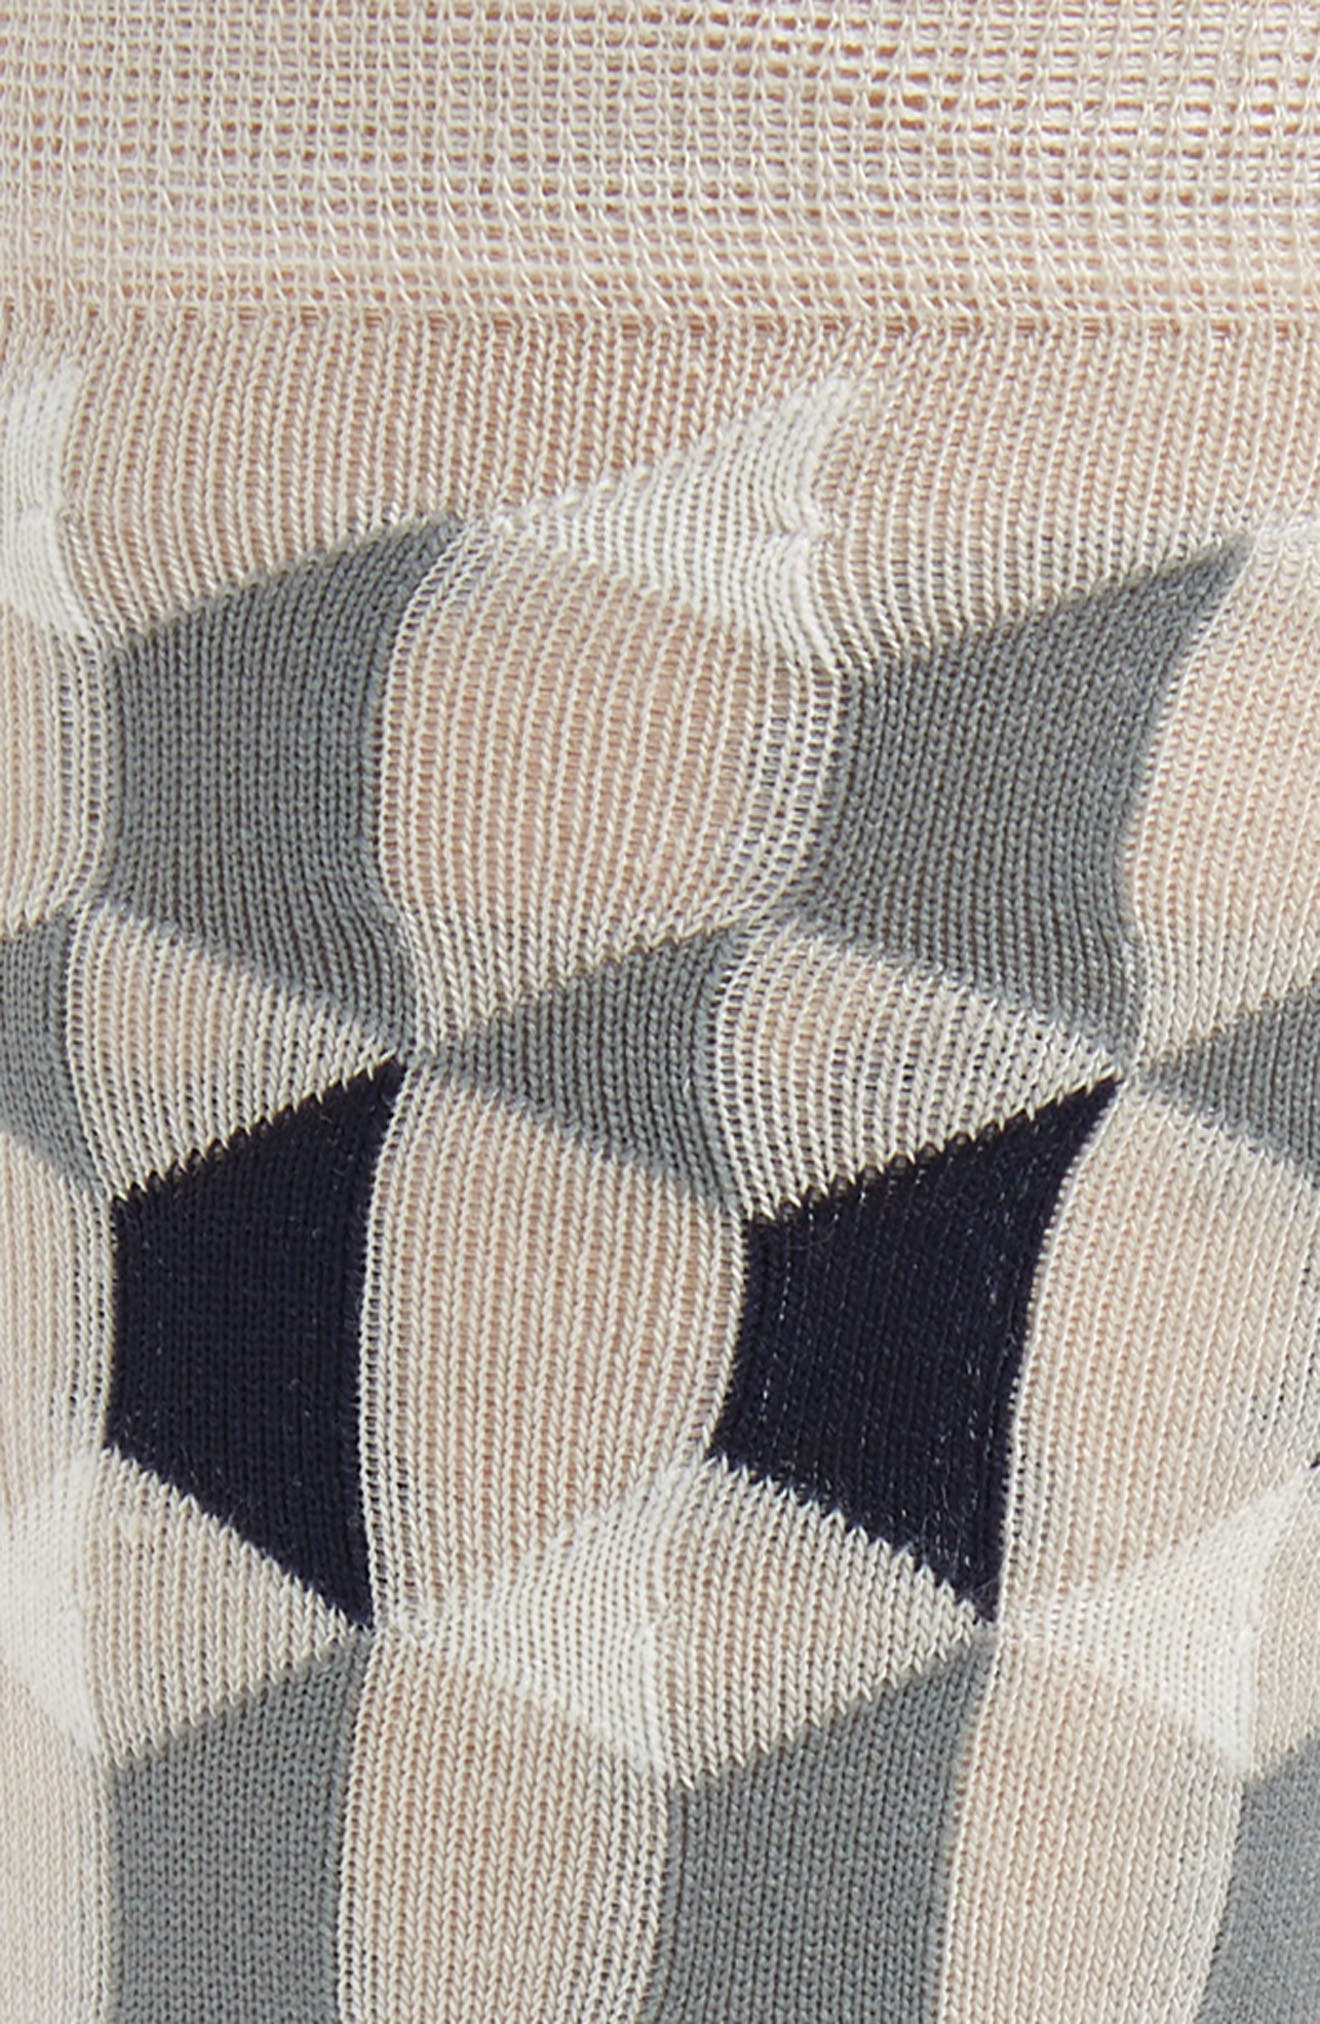 Geometric Socks,                             Alternate thumbnail 2, color,                             030